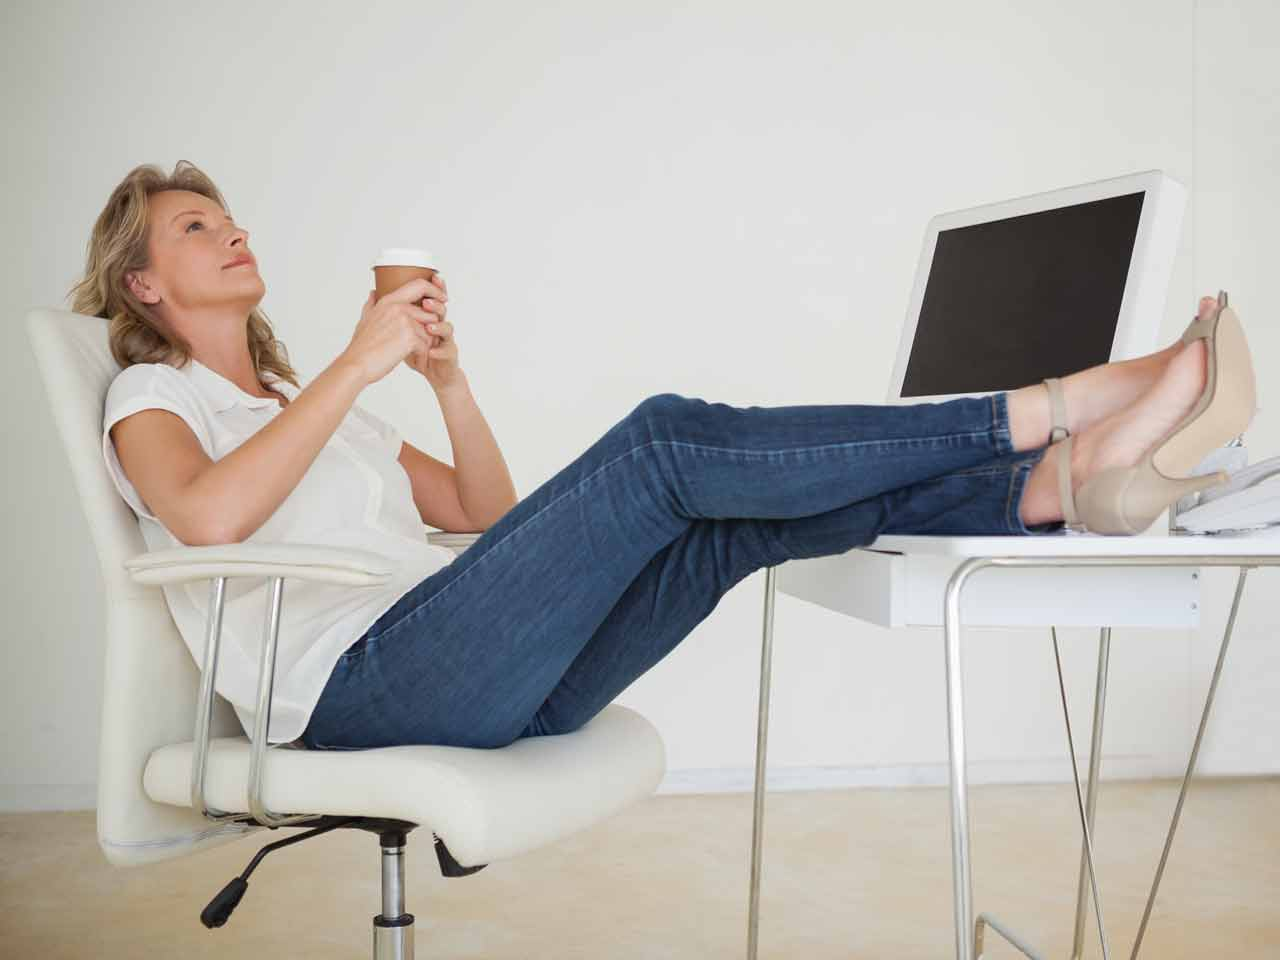 Woman putting her feet up